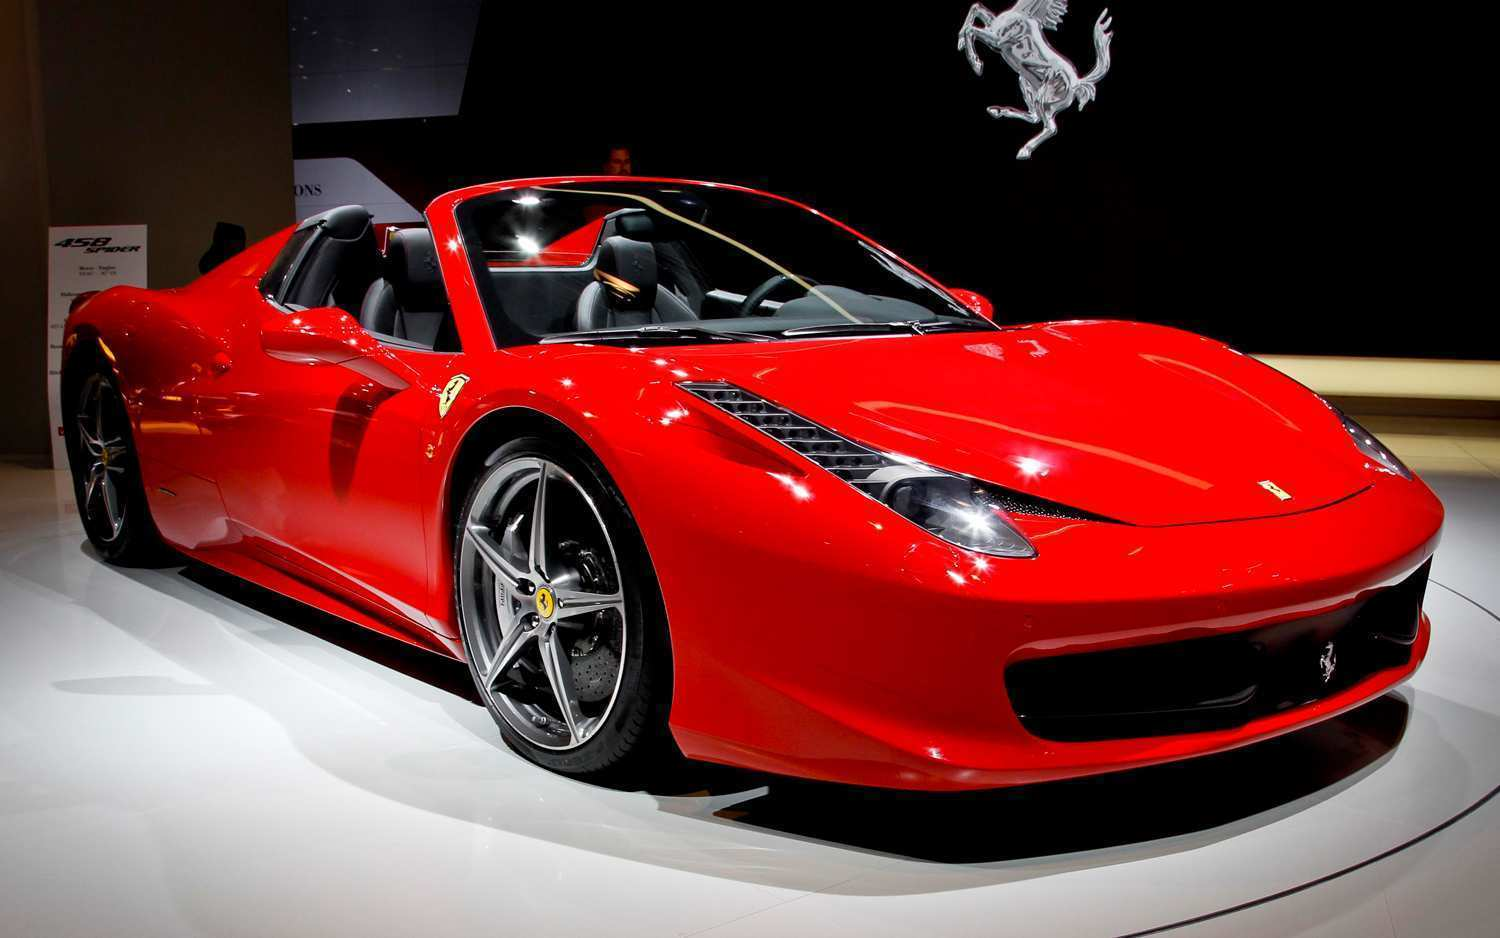 63 All New 2020 Ferrari 458 Spider Price